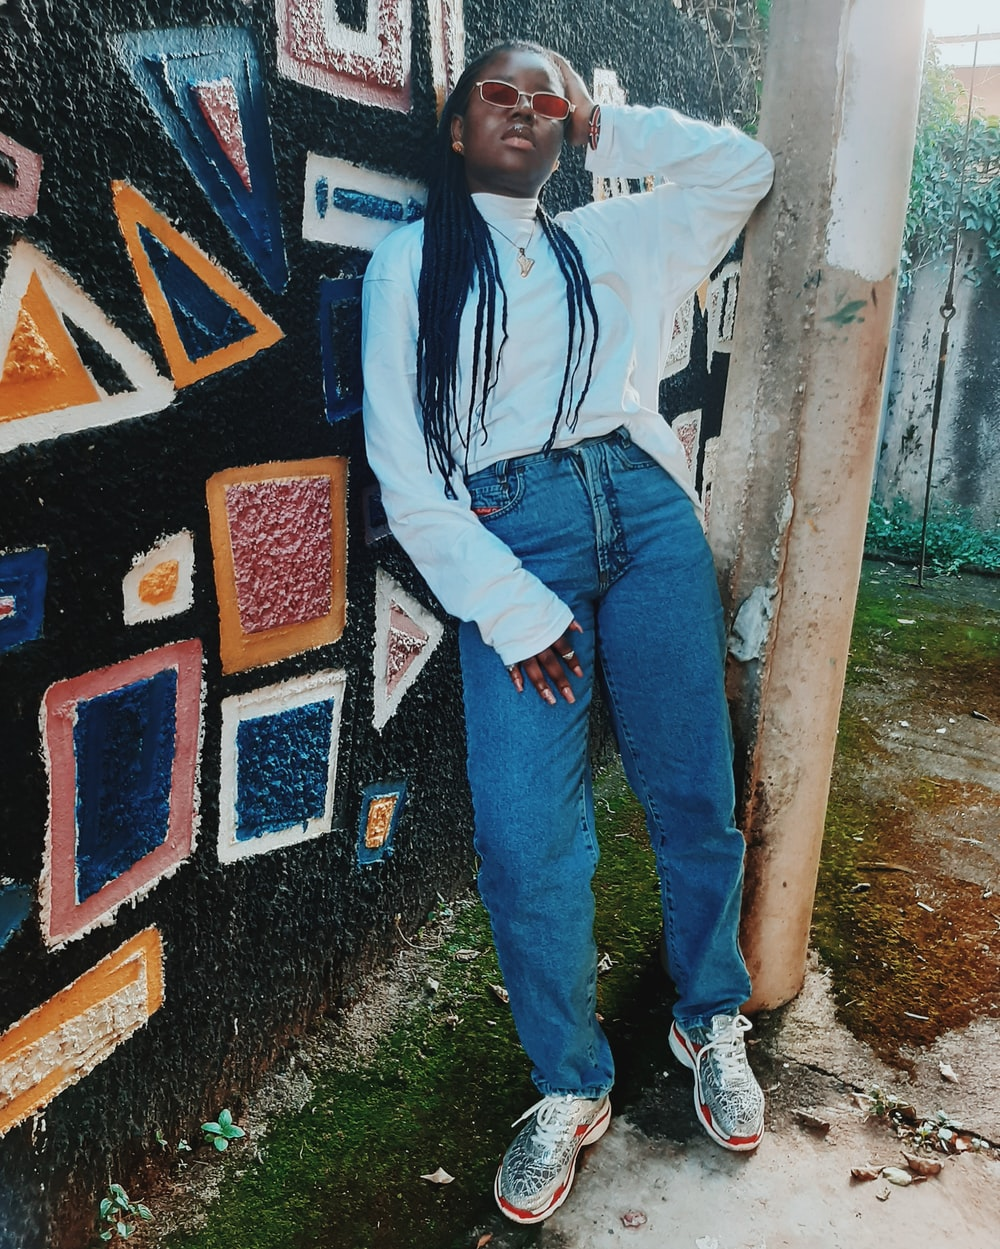 woman in blue denim jeans standing beside wall with graffiti